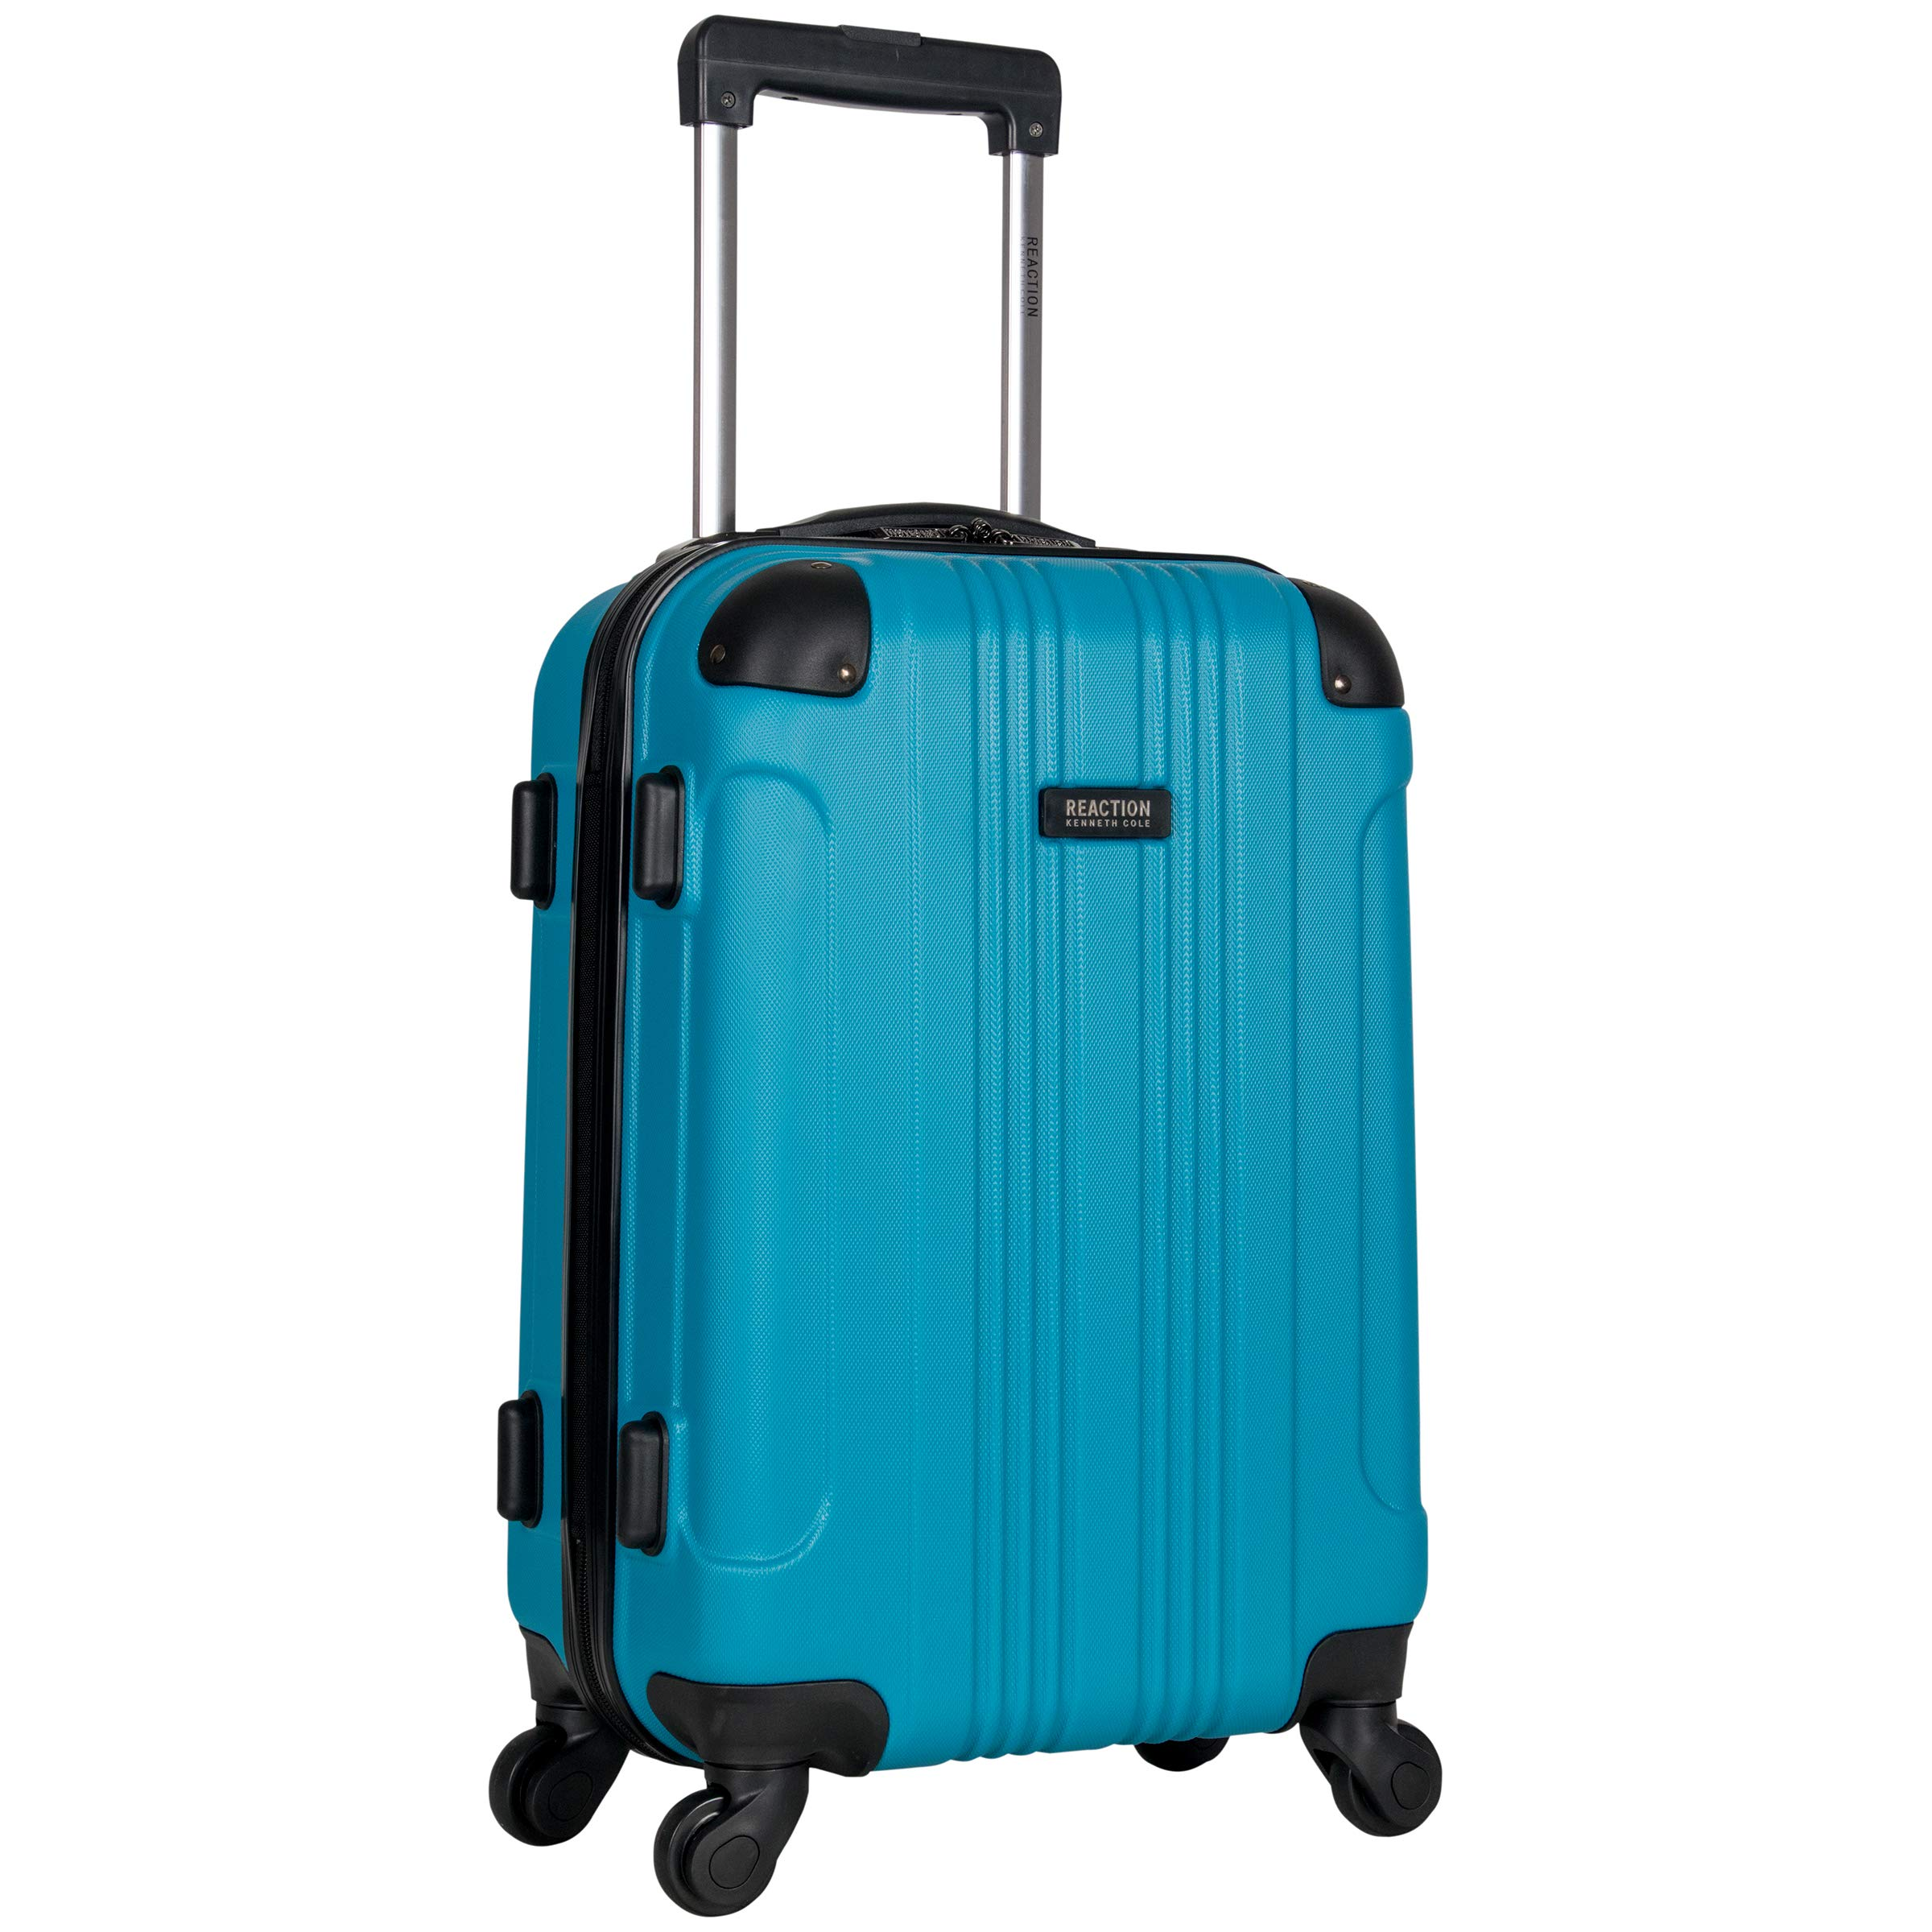 Kenneth Cole Reaction Out Of Bounds 20-Inch Carry-On Lightweight Durable Hardshell 4-Wheel Spinner Cabin Size Luggage by Kenneth Cole REACTION